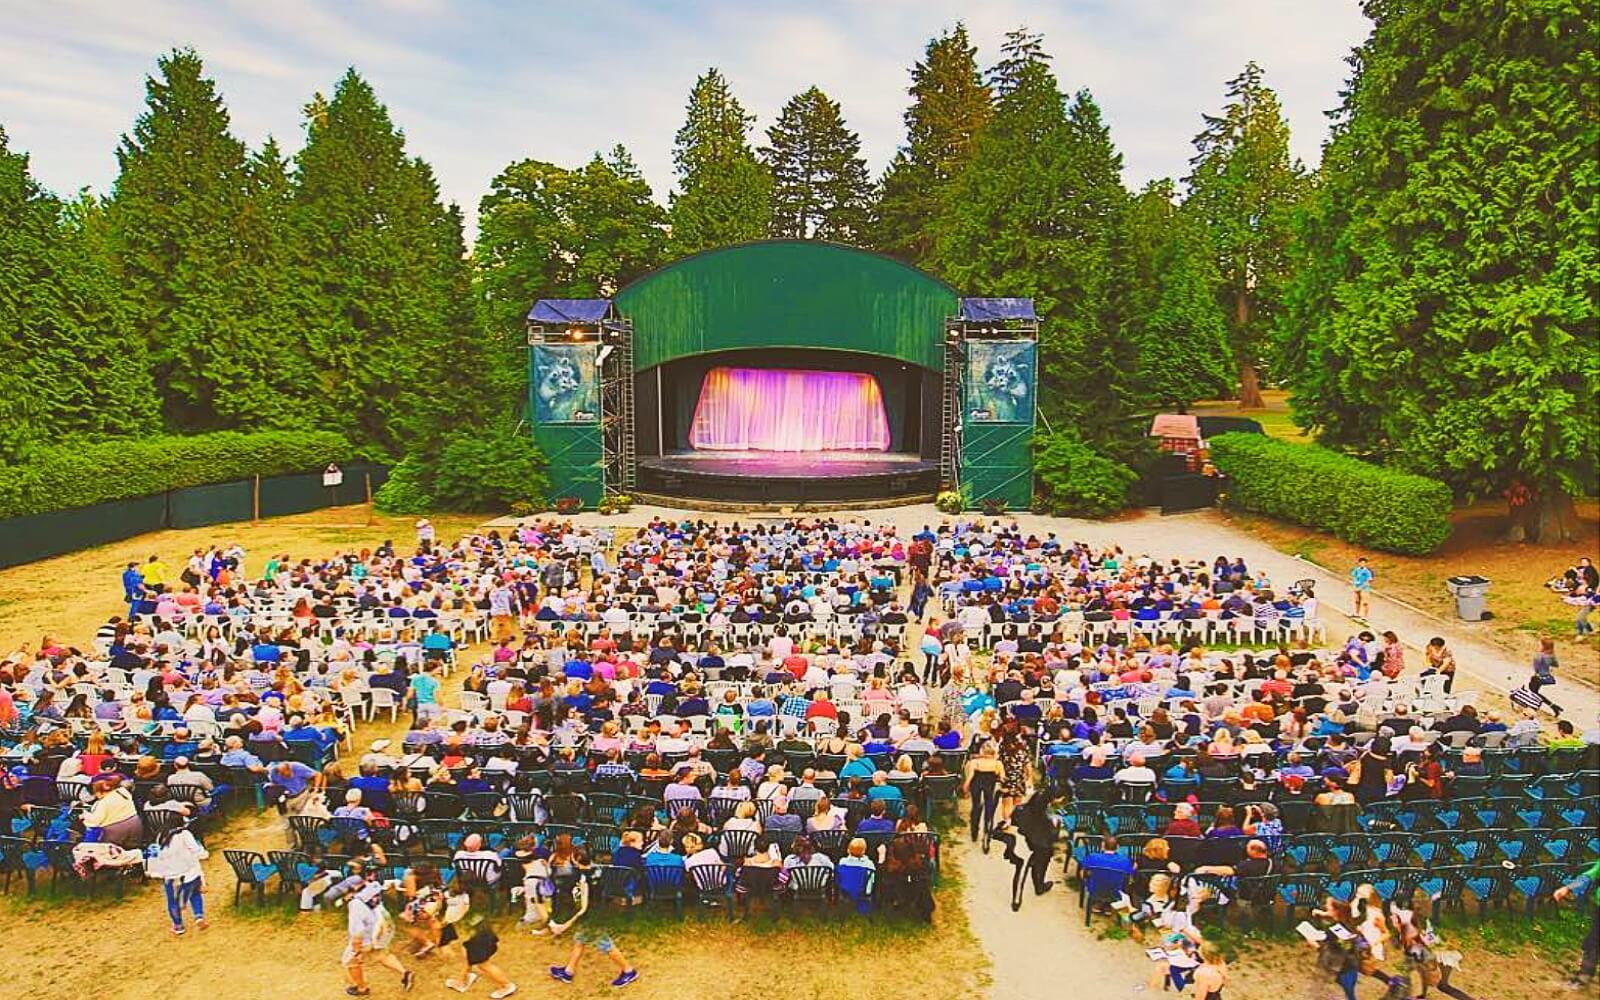 Theatre Under the Stars at Stanley Park